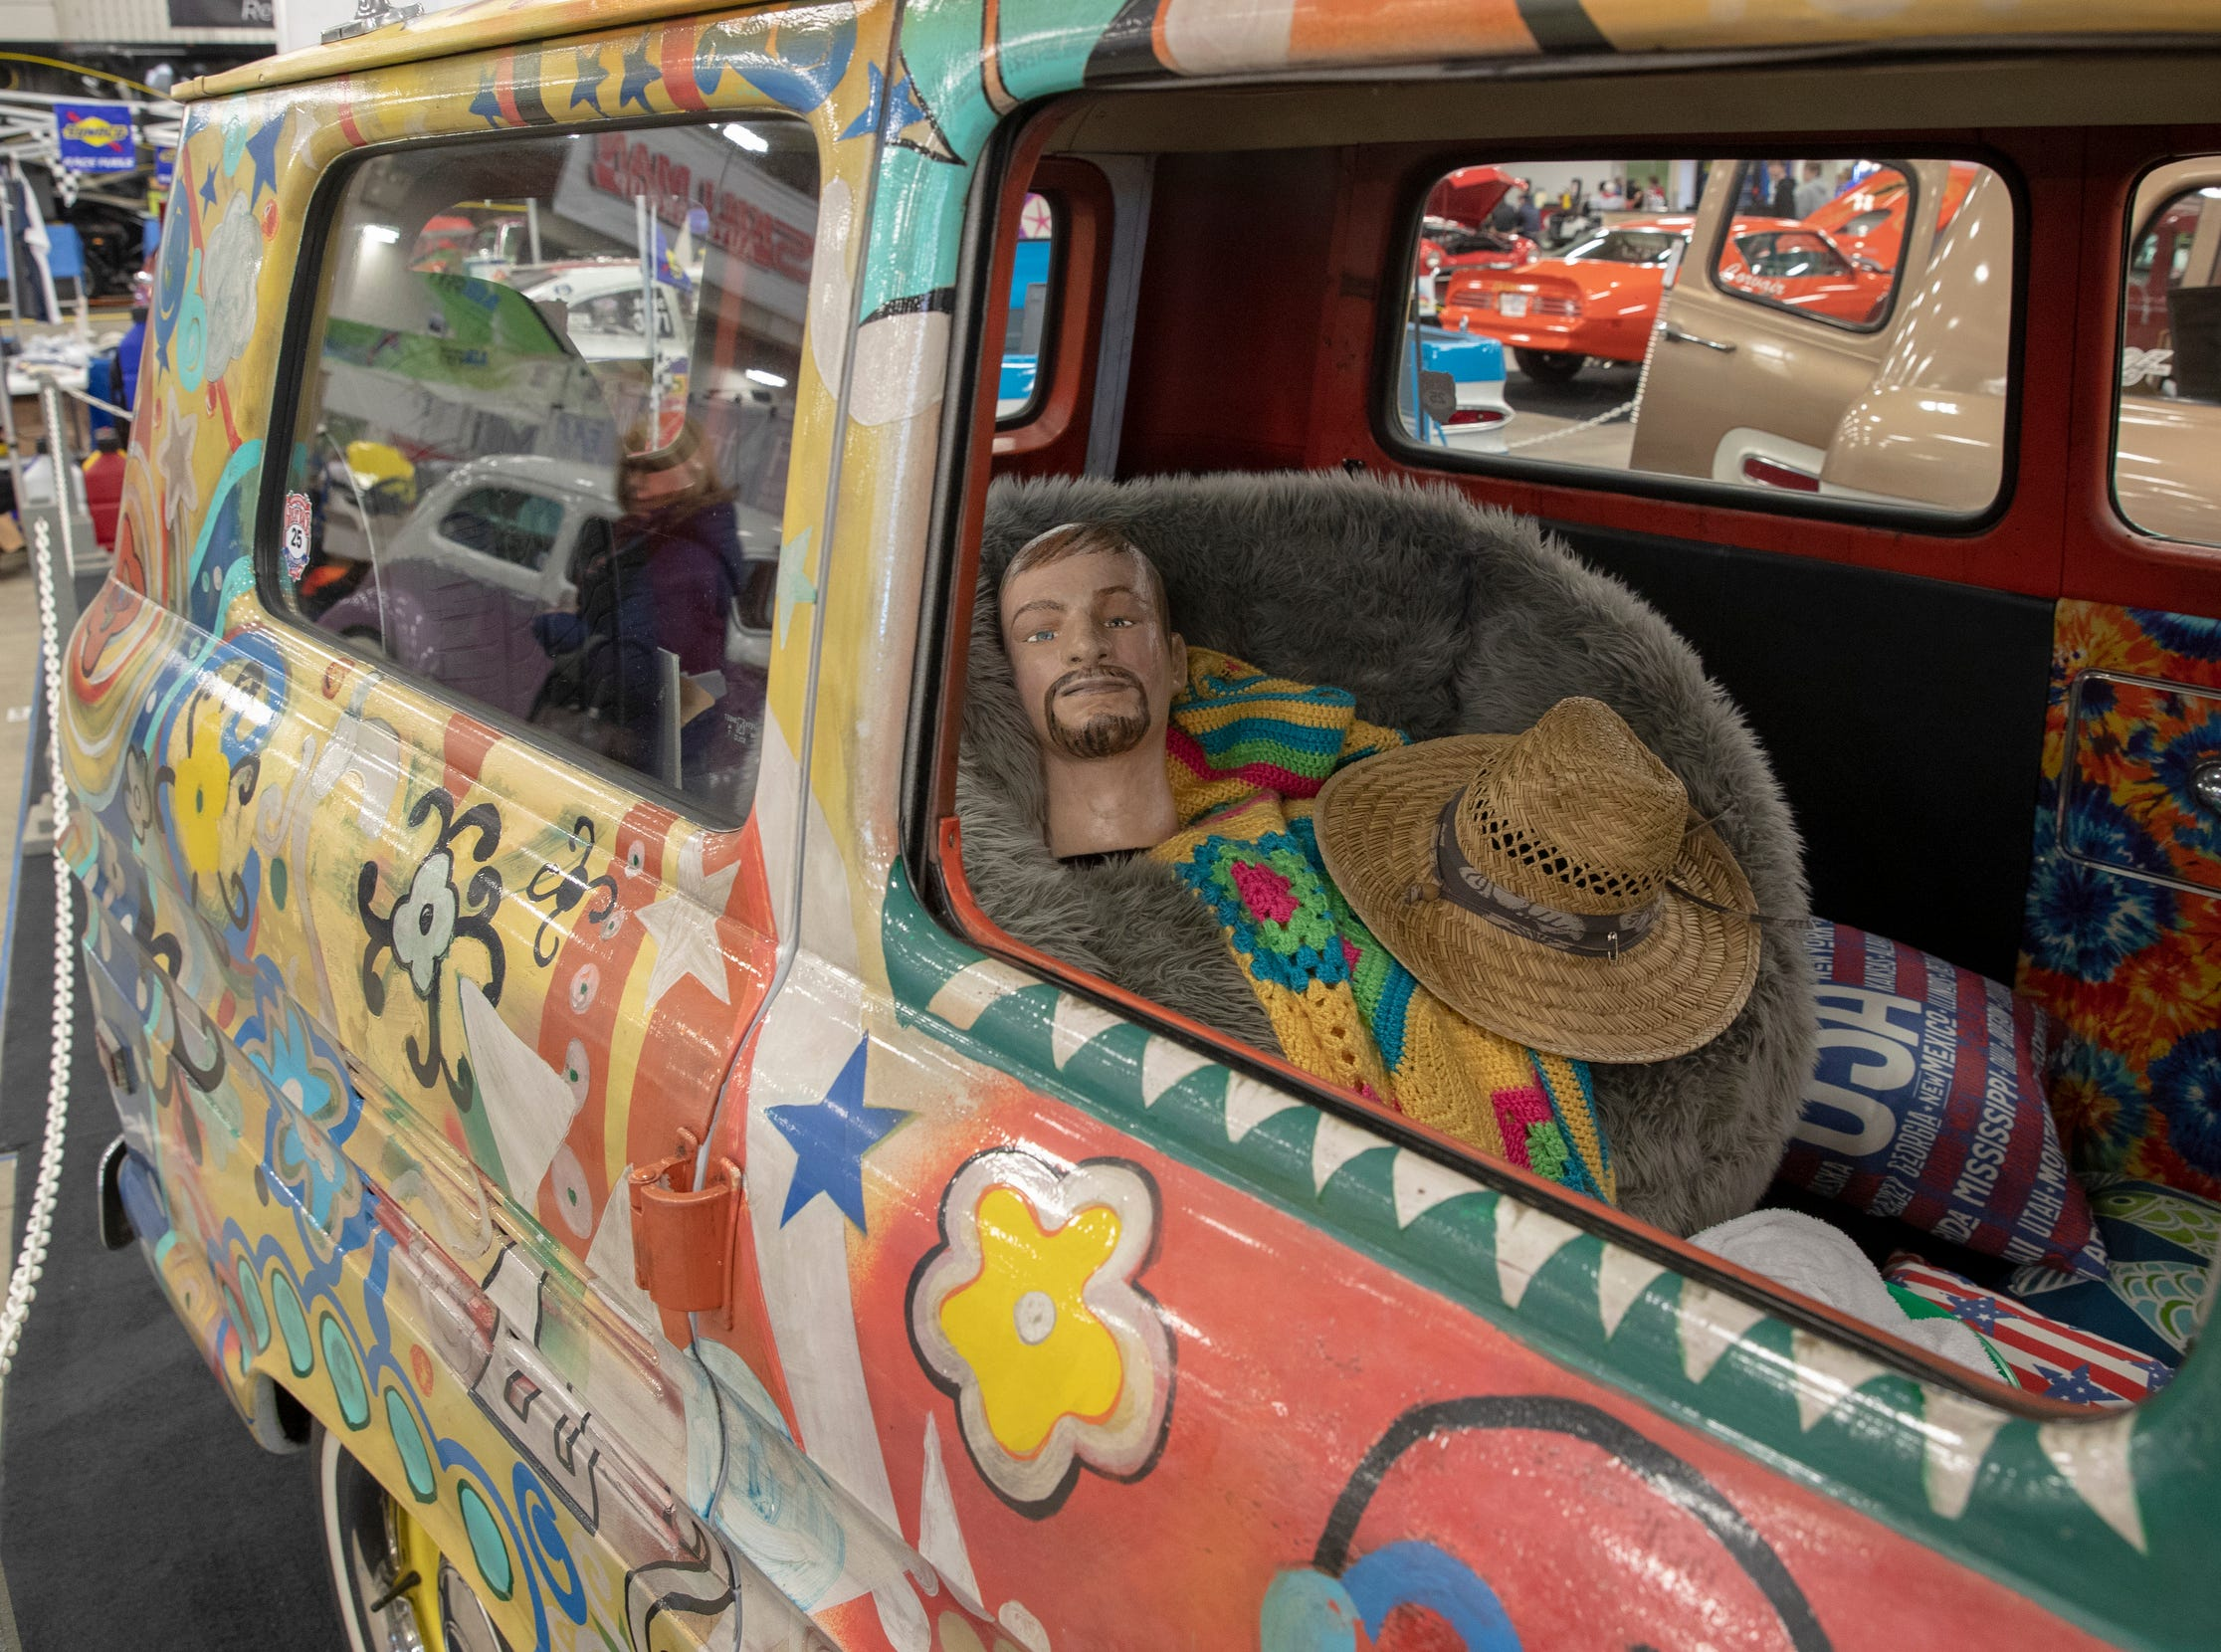 A 1962 Chevy Corvair Greenbrier Van, complete with a mannequin sitting inside, at World of Wheels at the Indiana State Fairgrounds, Indianapolis, Friday, Feb. 8, 2019. The event runs through the weekend and features four big rooms of stock and heavily customized cars.